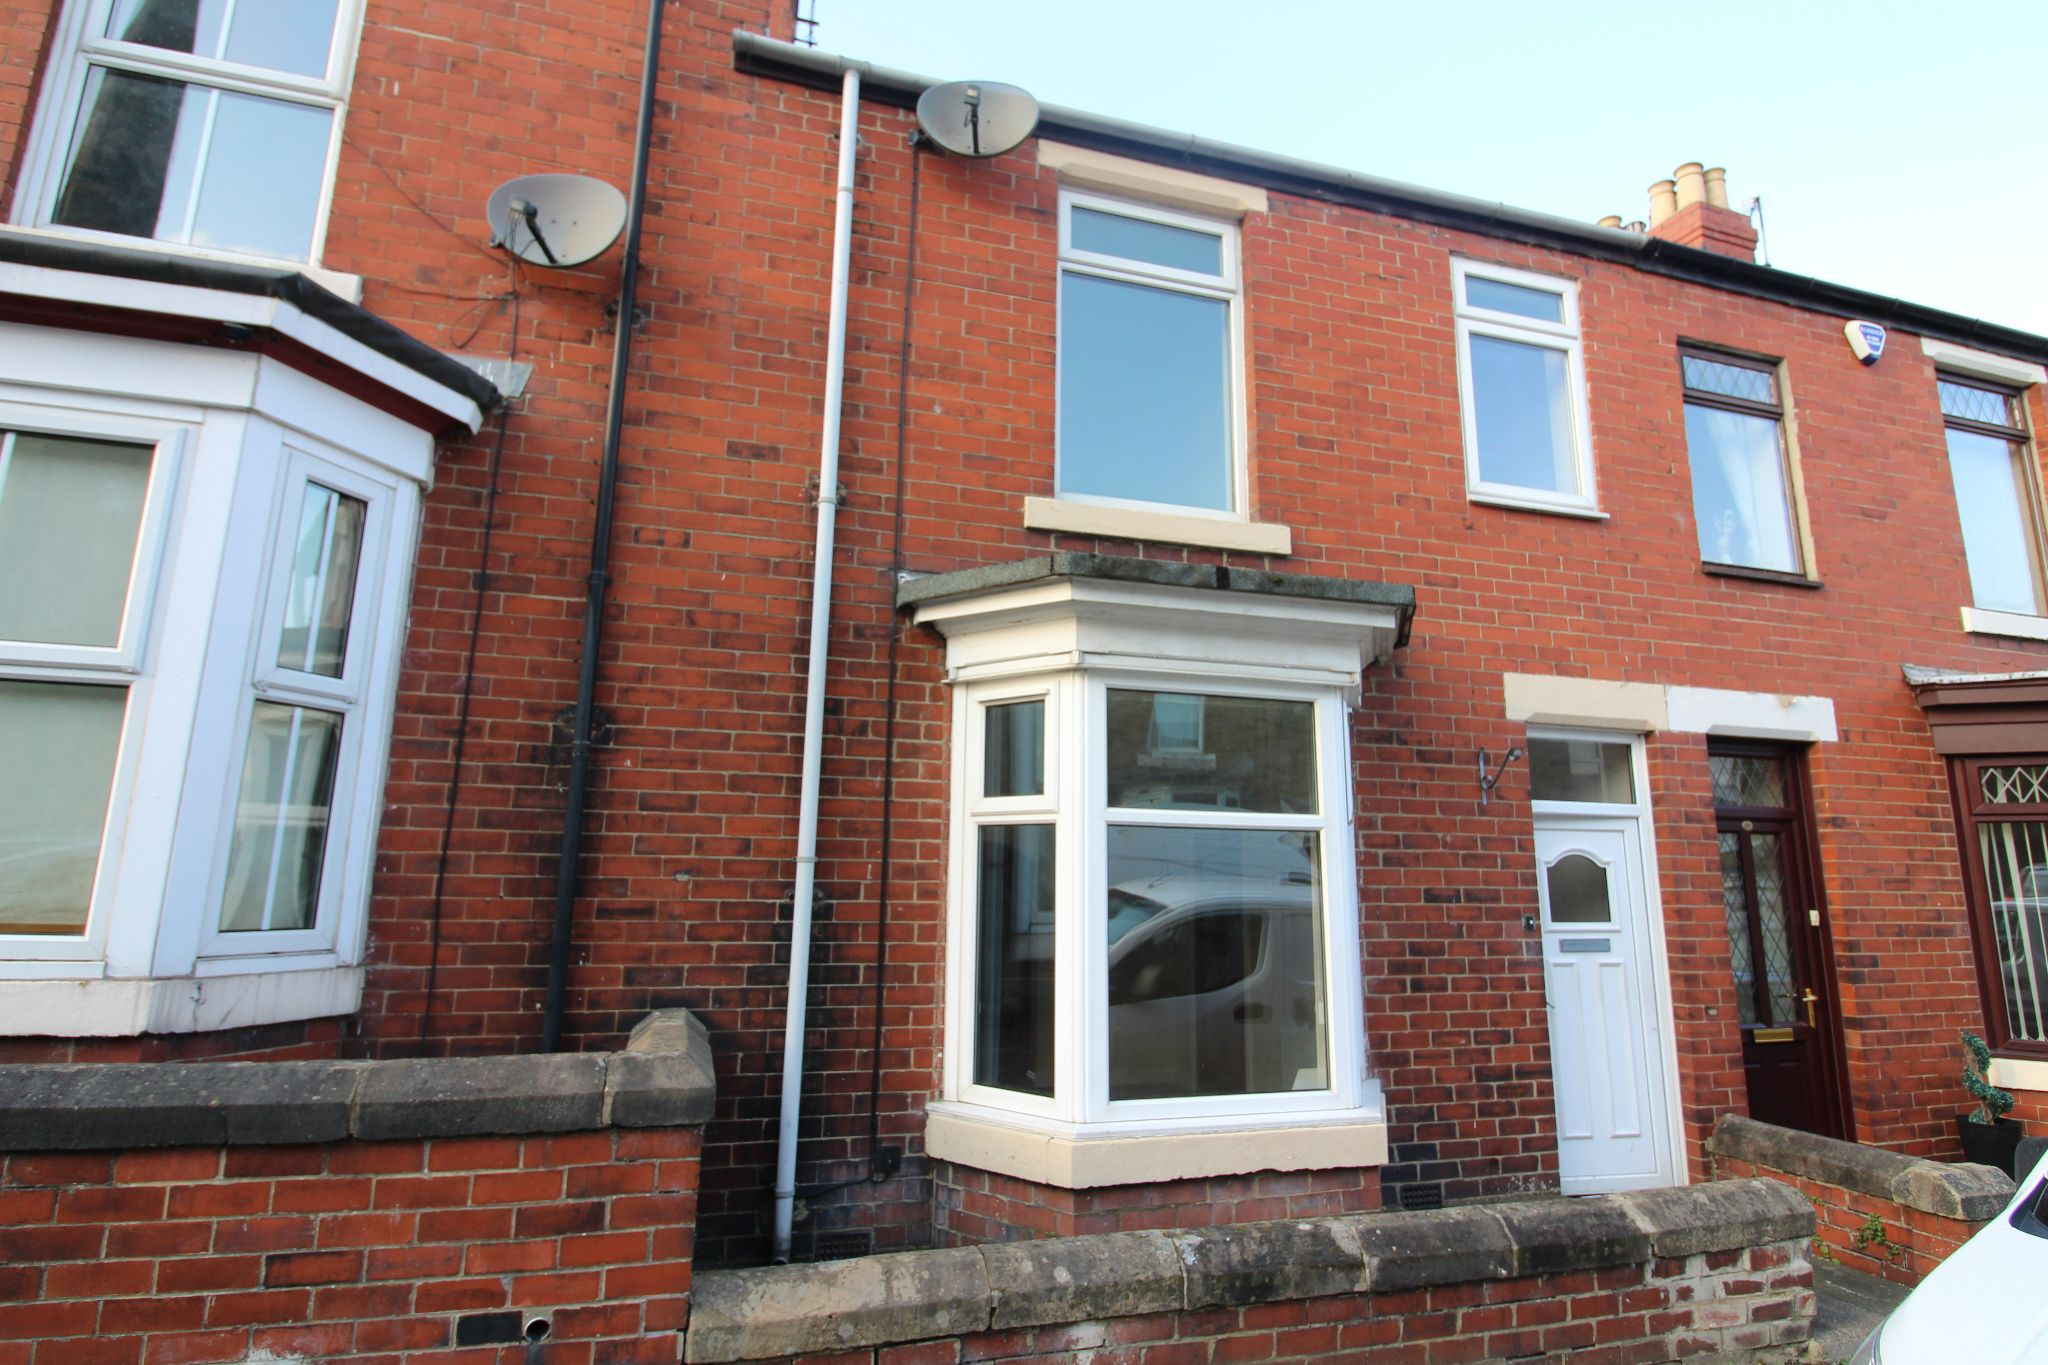 3 bedroom mid terraced house To Let in Shildon - Photograph 5.